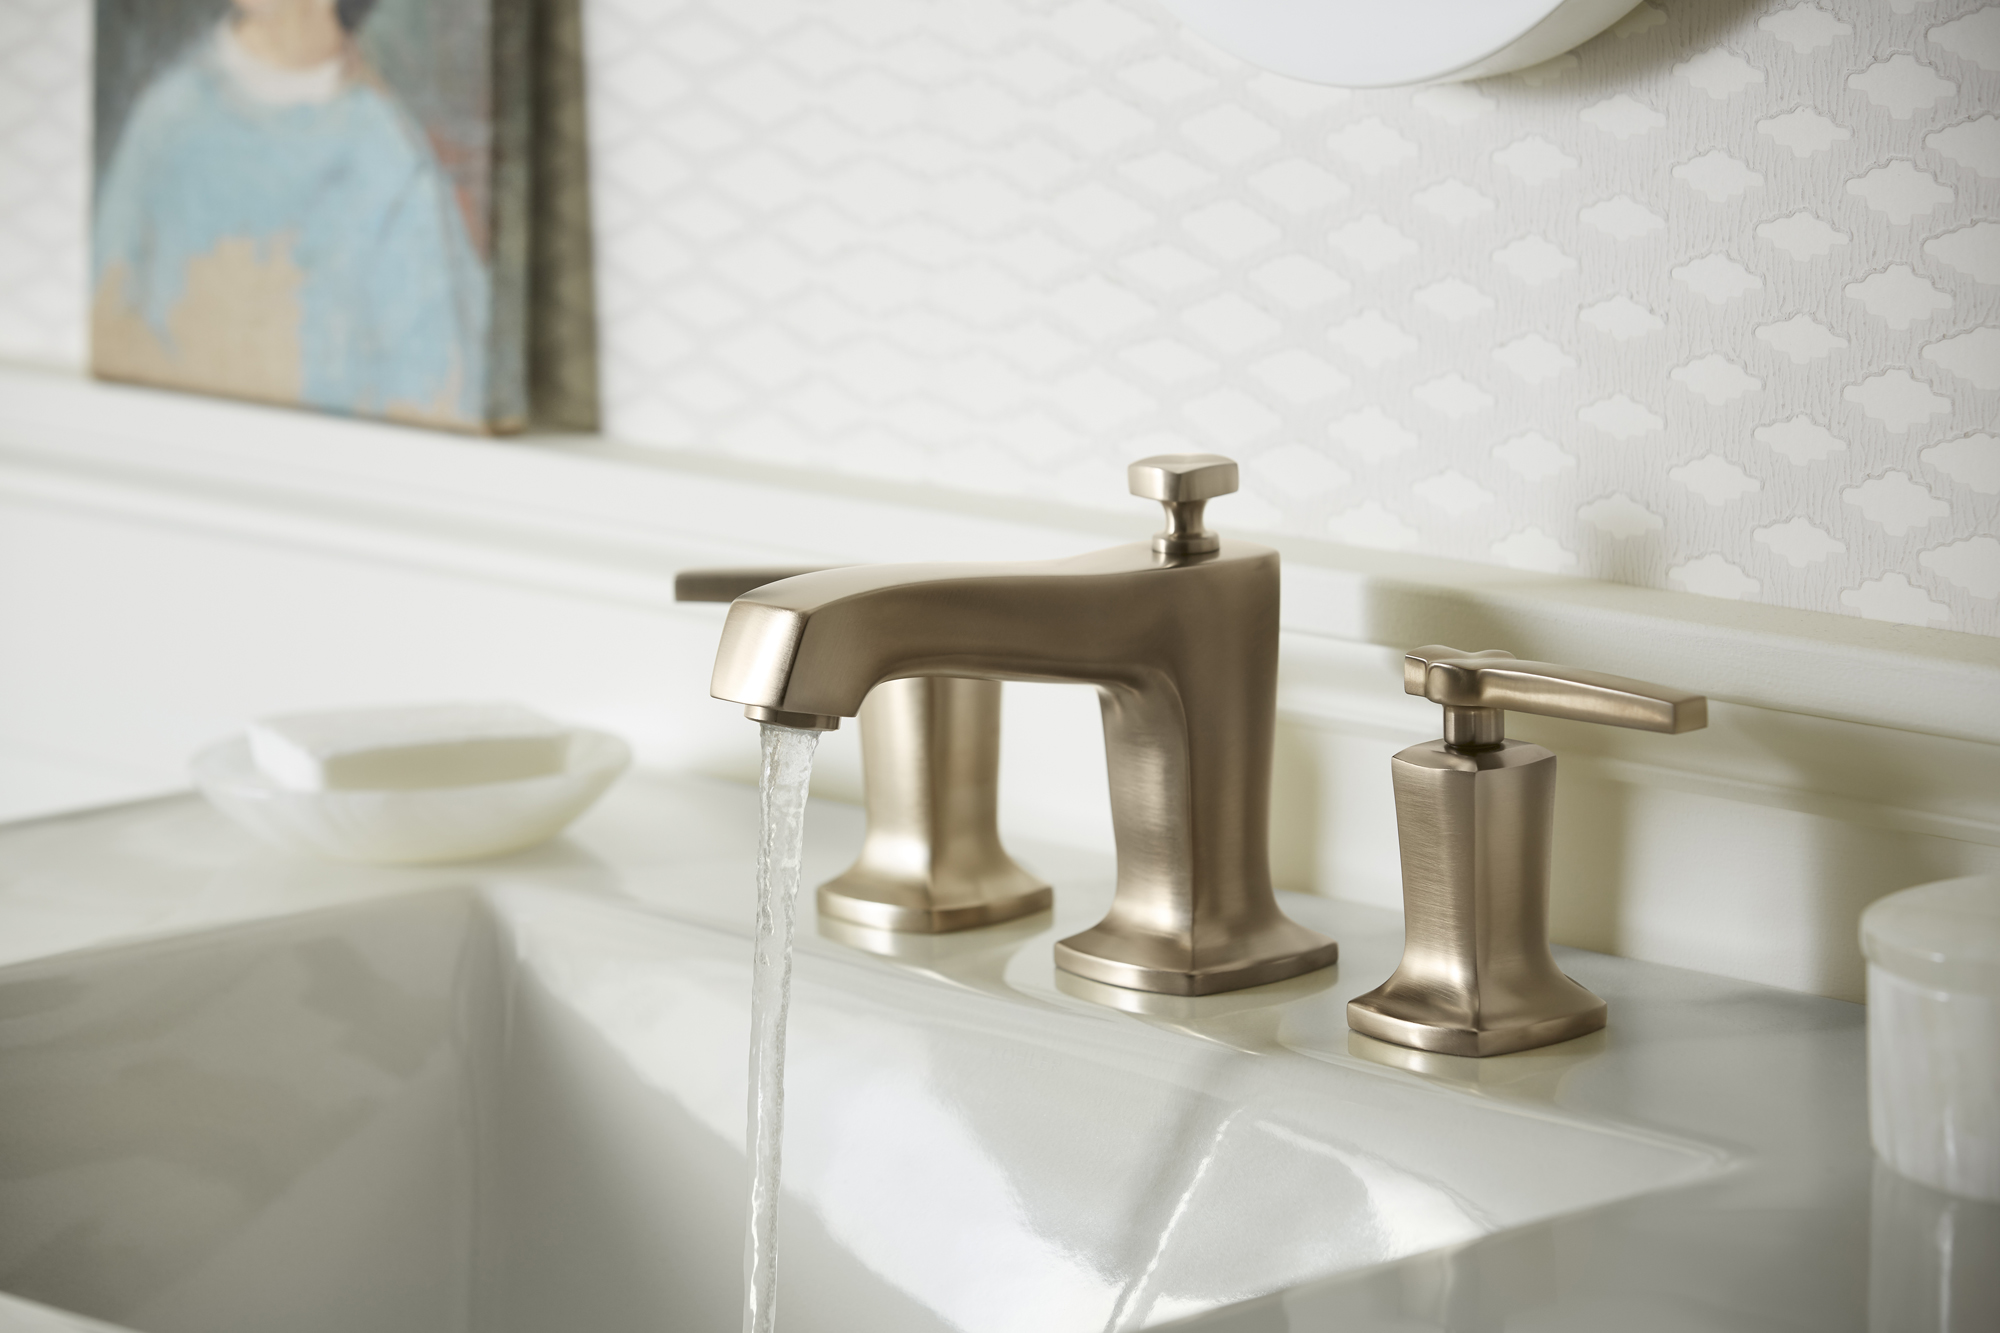 Ceramic/Impressions® sink     Margaux® faucet     With its subtle pillow-top detailing and Vibrant® Brushed Bronze finish, this faucet adds a delightful contrast to the room's muted palette.